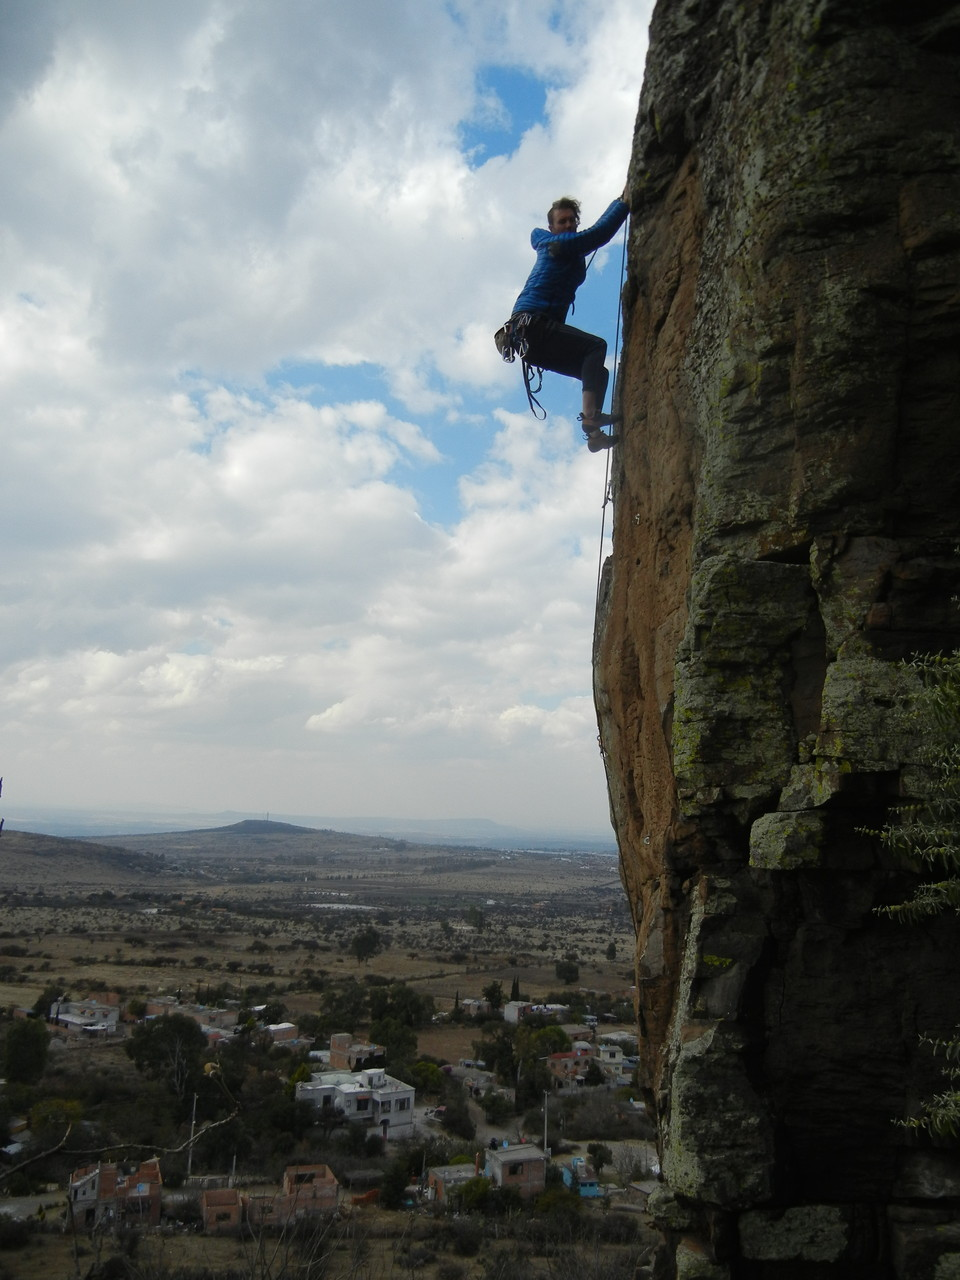 Alcocer Free 5.10c. Sector Headwall